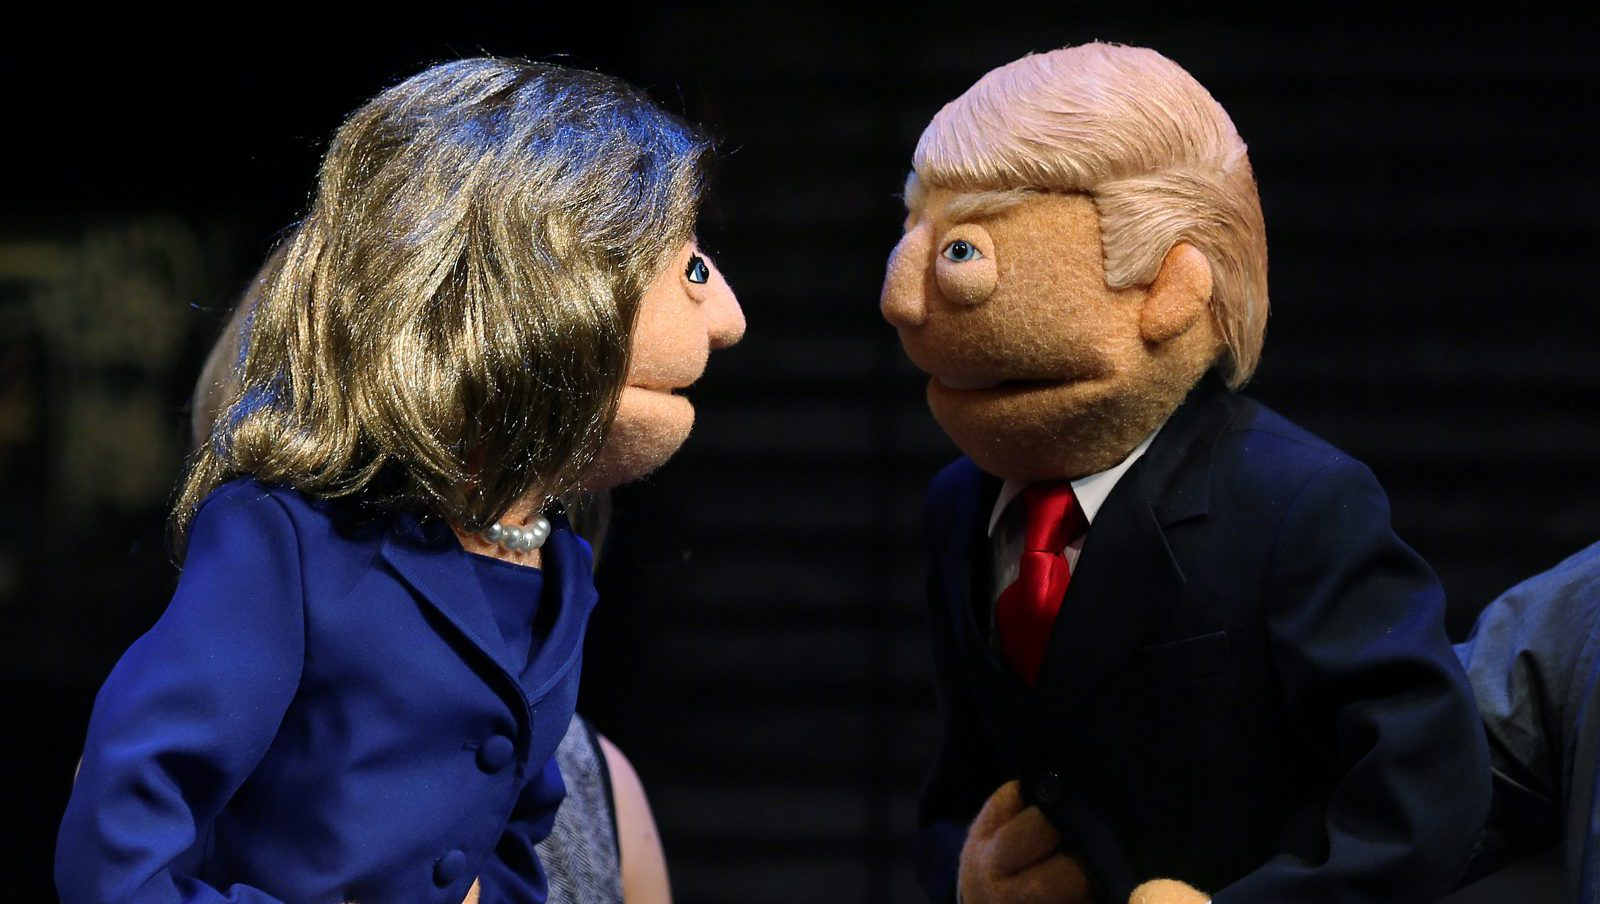 Puppets in the likeness of Democratic presidential nominee Hillary Clinton (L) and Republican presidential nominee Donald Trump (R) face-off as they pose for a photo after a mock Avenue Q sponsored debate in the Manhattan borough of New York, U.S., September 26, 2016. REUTERS/Carlo Allegri - RTSPJ2A